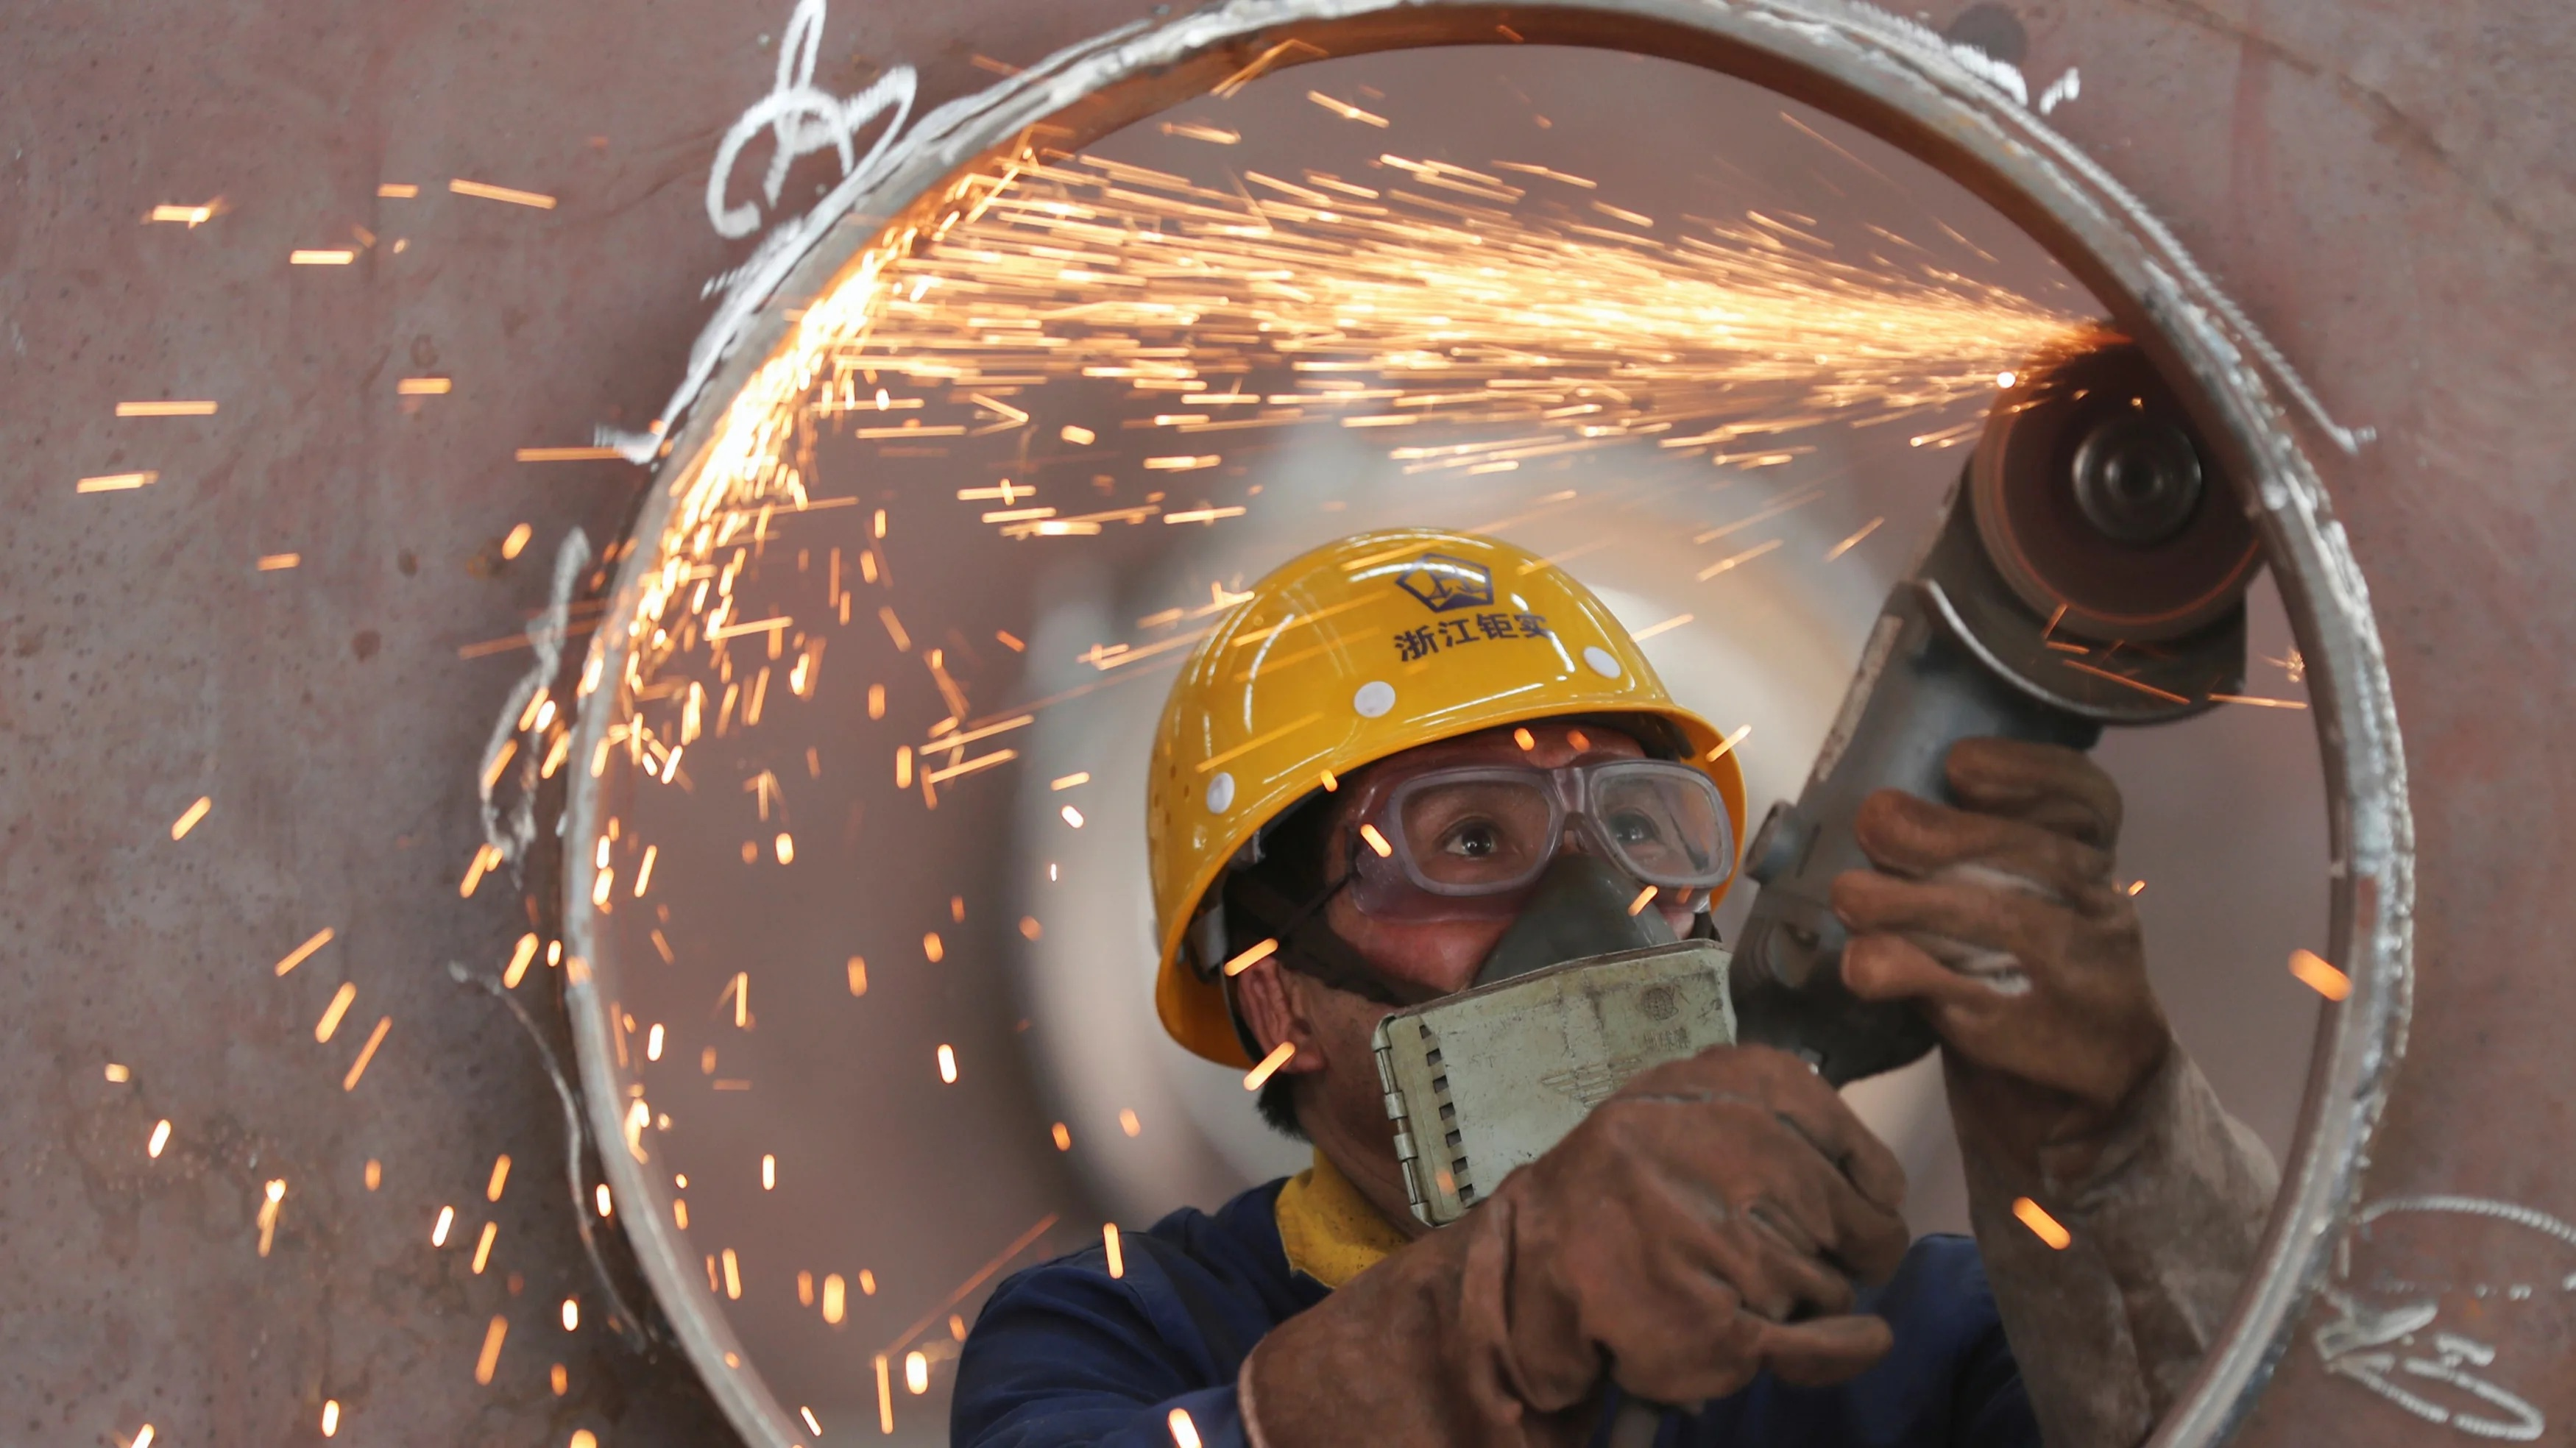 An employee works on a production line manufacturing steel structures at a factory in Huzhou